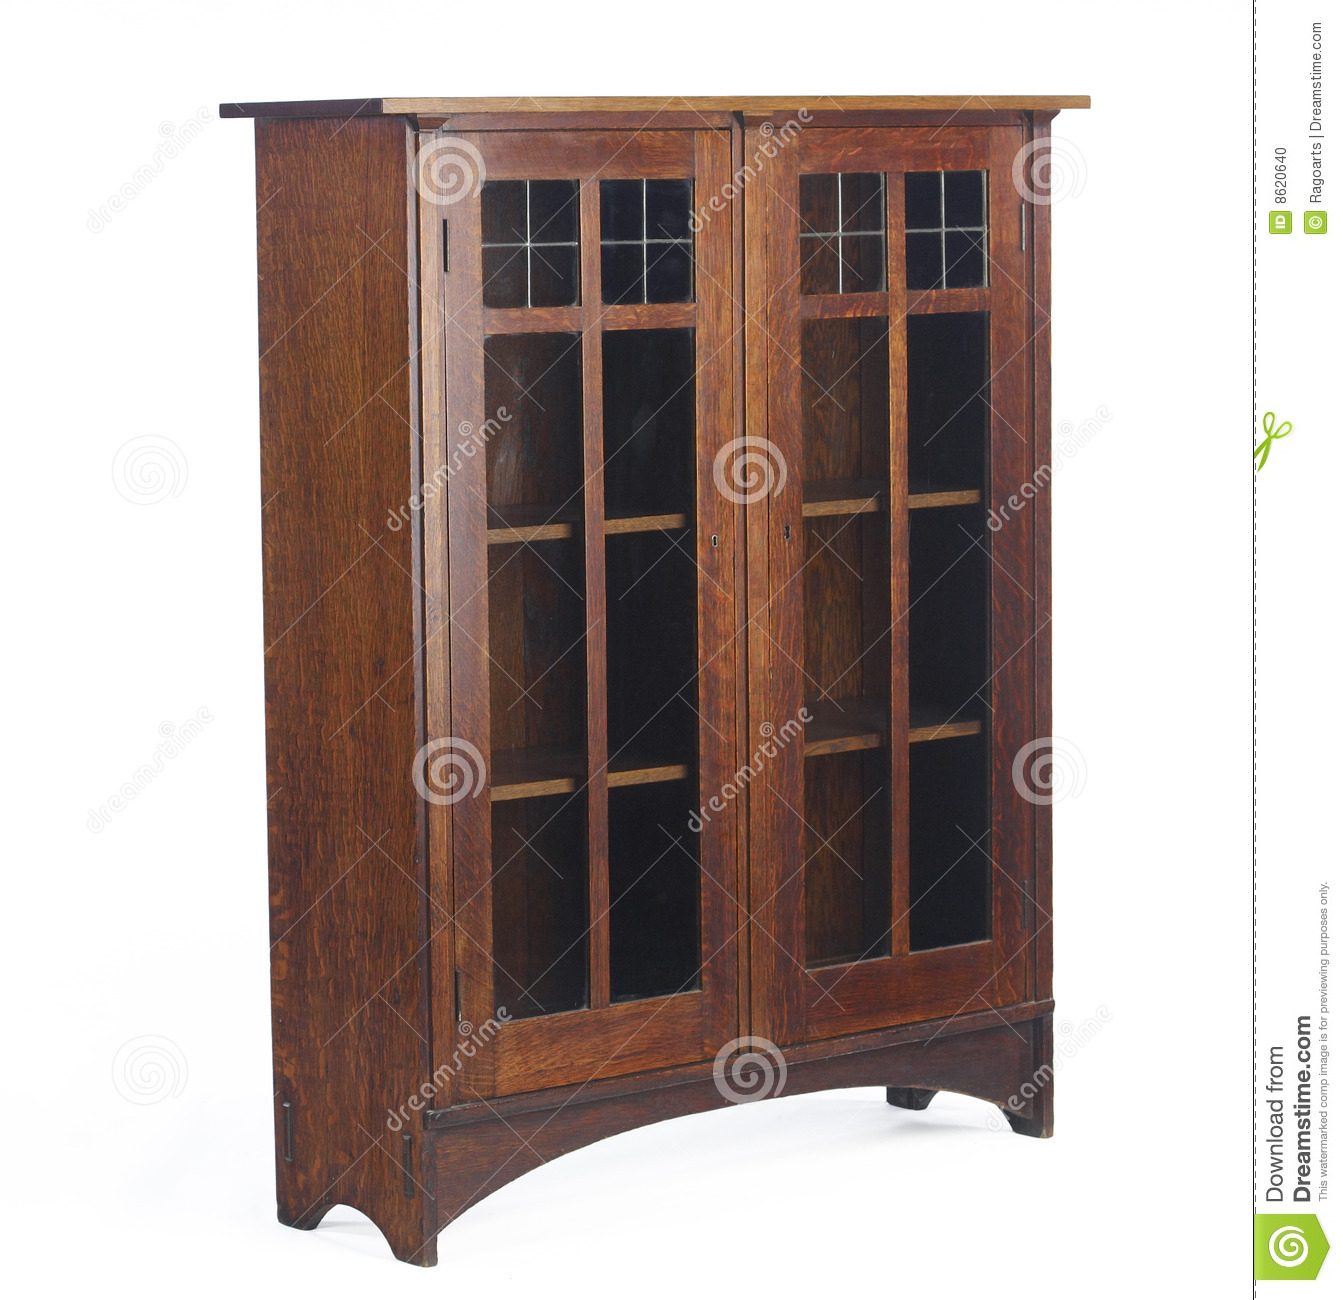 Arts and crafts glass doored bookcase editorial image for Craftsman style bookcase plans